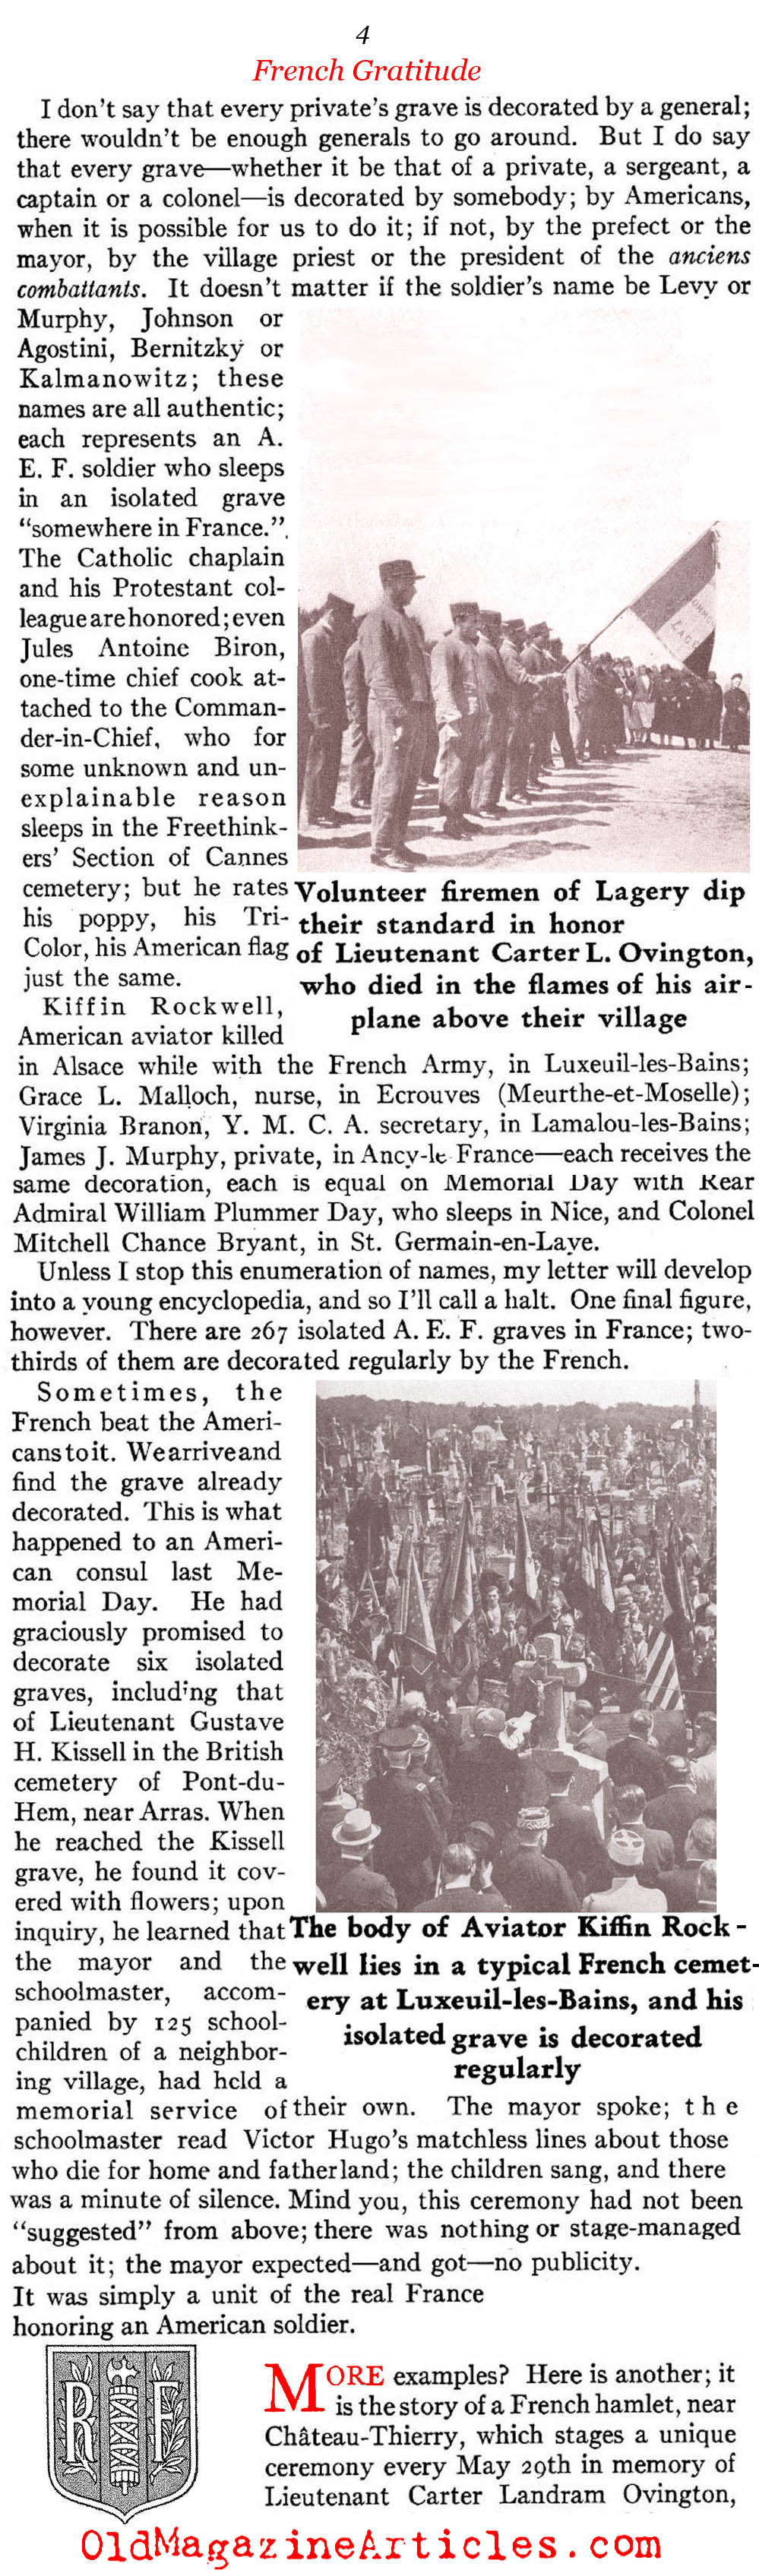 ''Thanks, America'': A French Expression of Gratitude (American Legion Monthly, 1936)